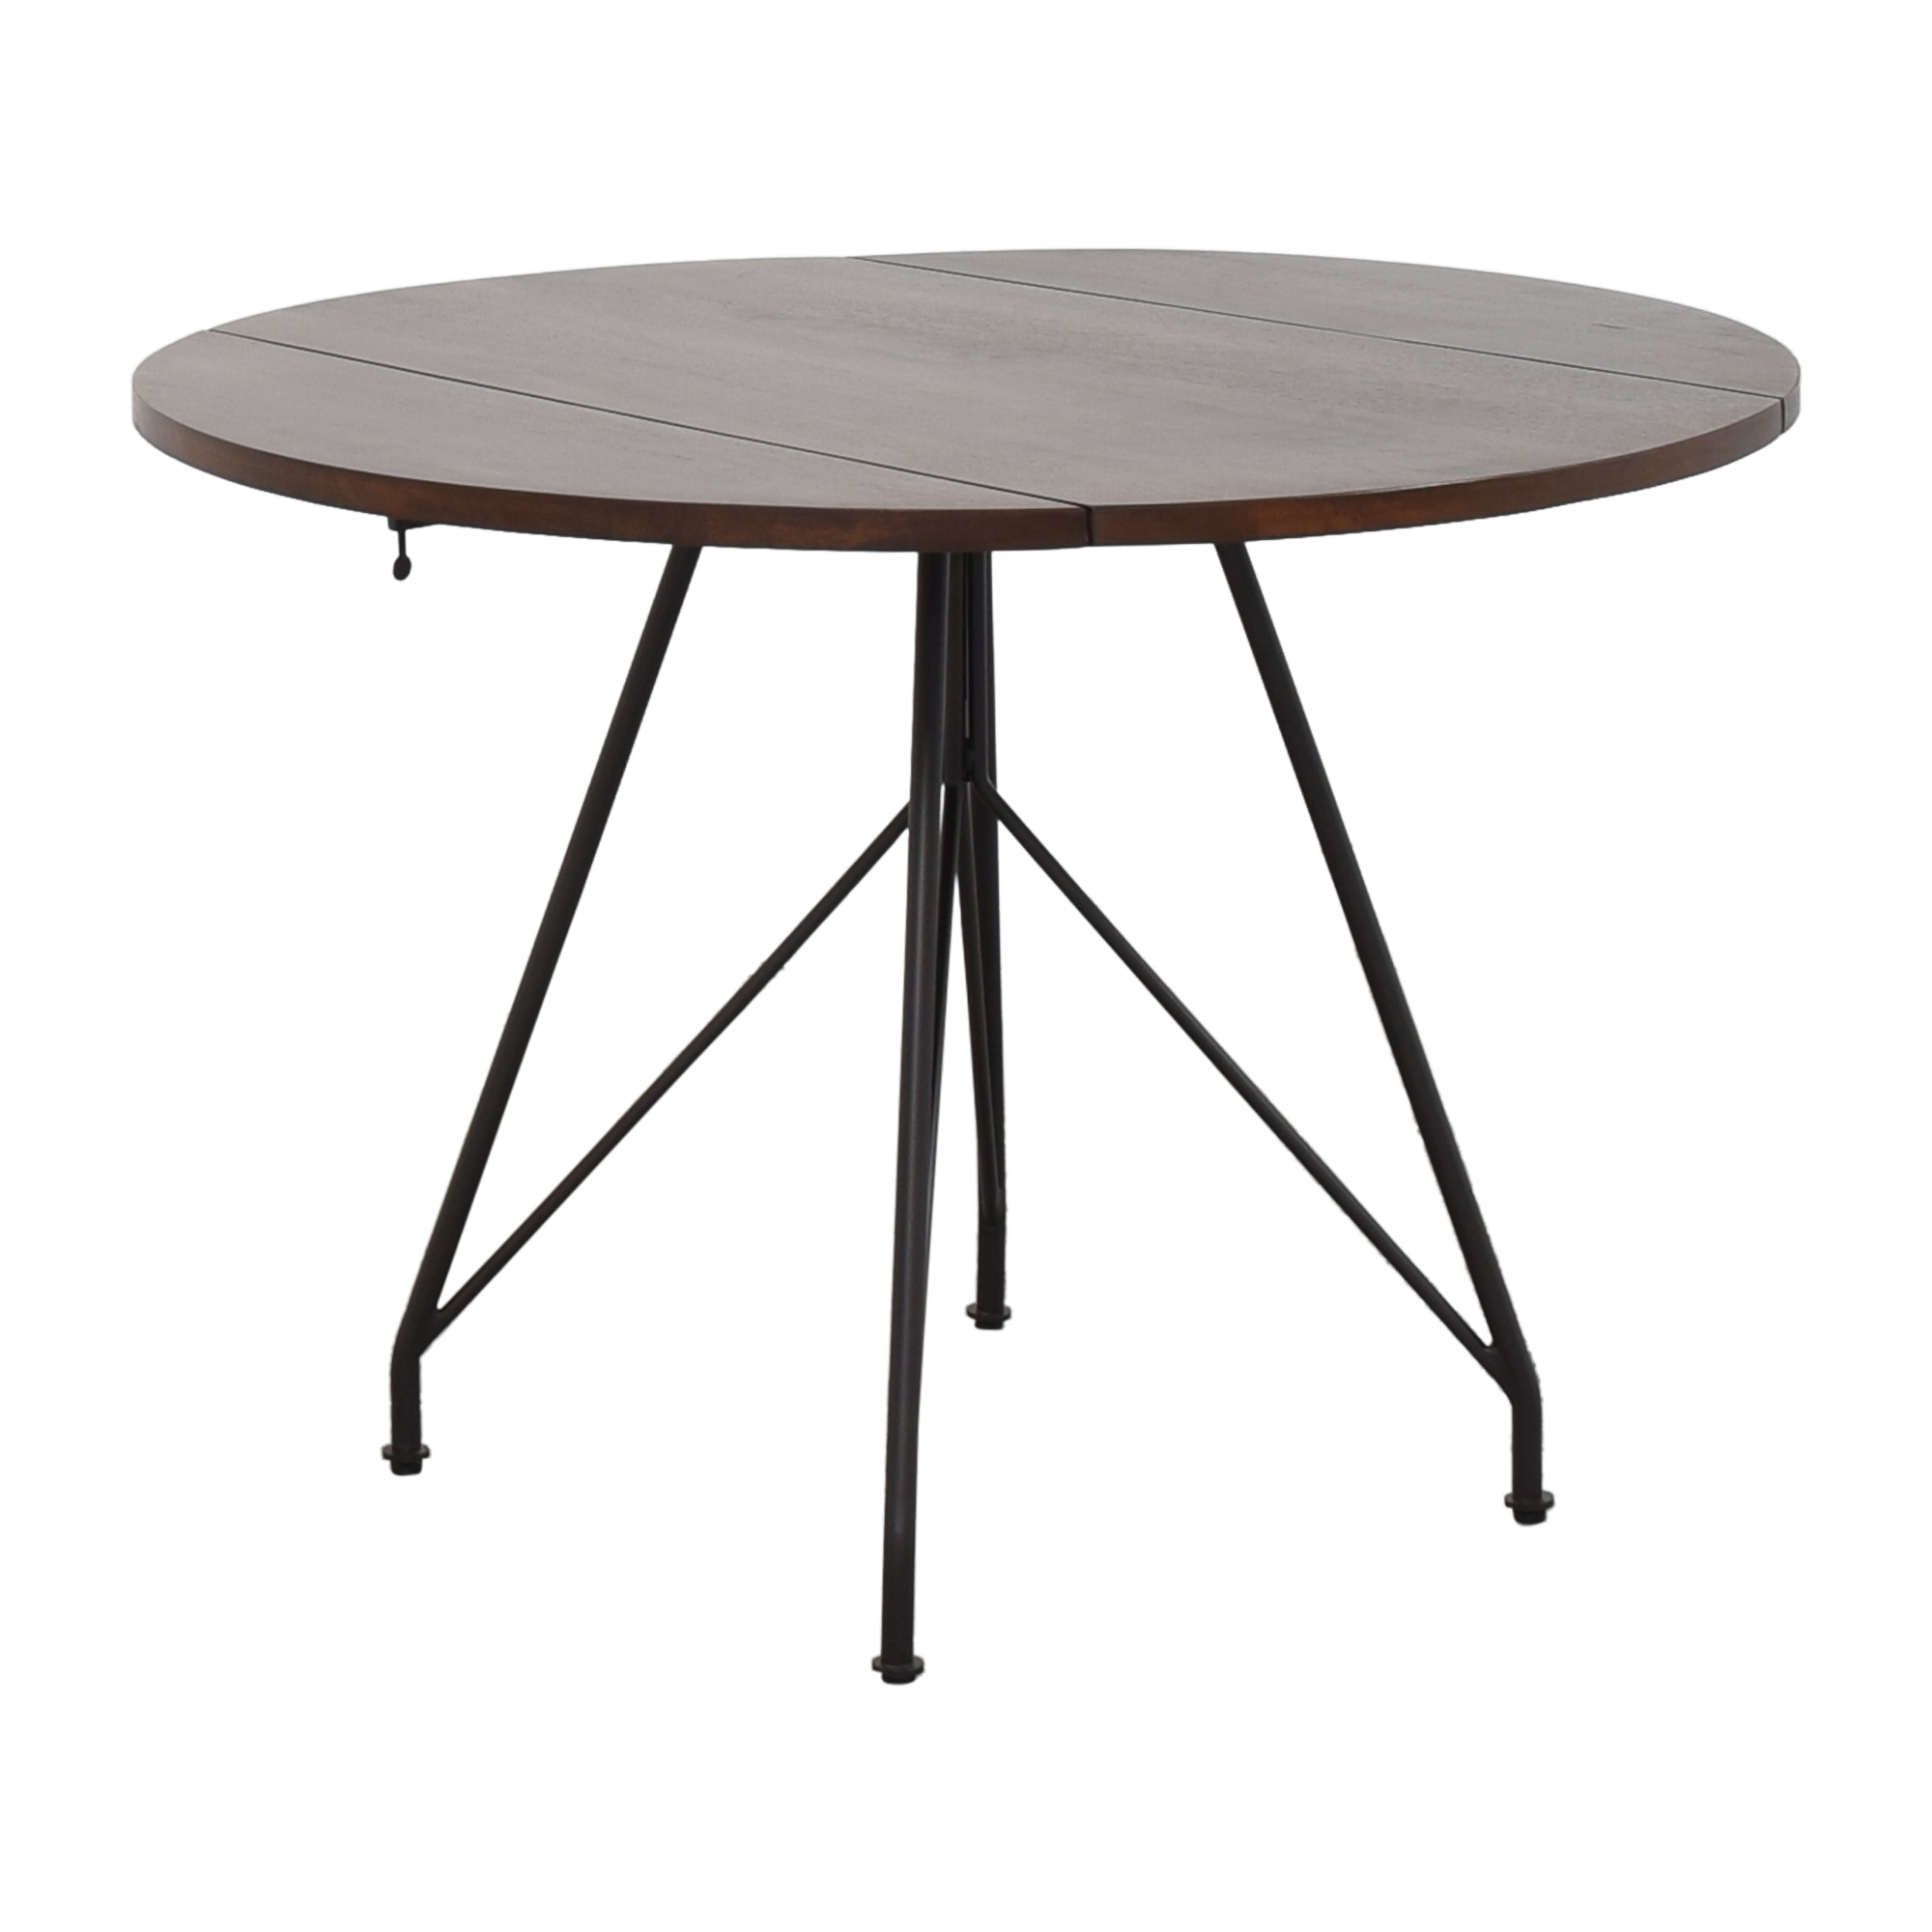 West Elm West Elm Jules Drop Leaf Expandable Dining Table ma